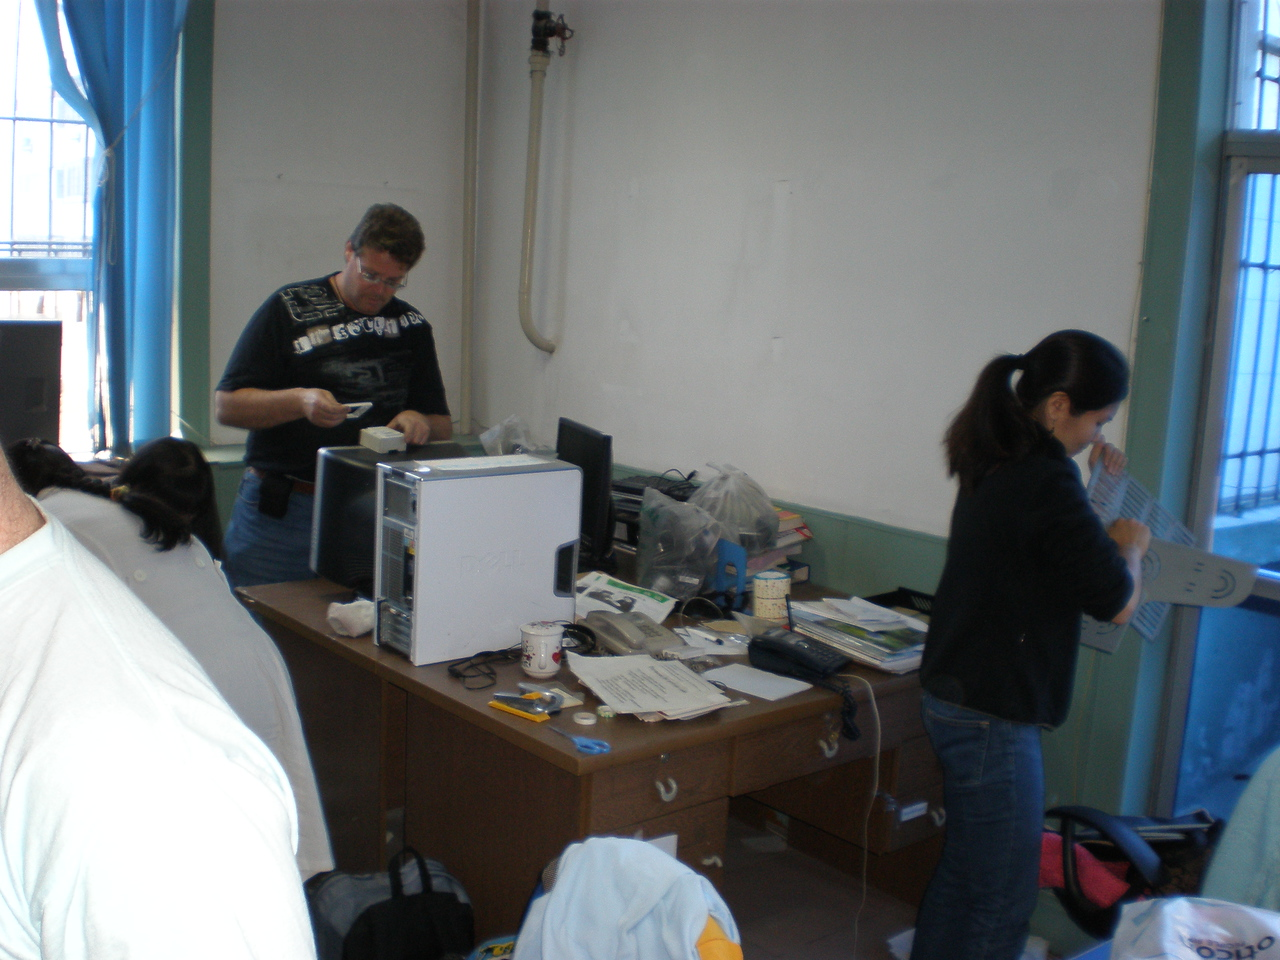 20081015 (photo taken by Richard G)